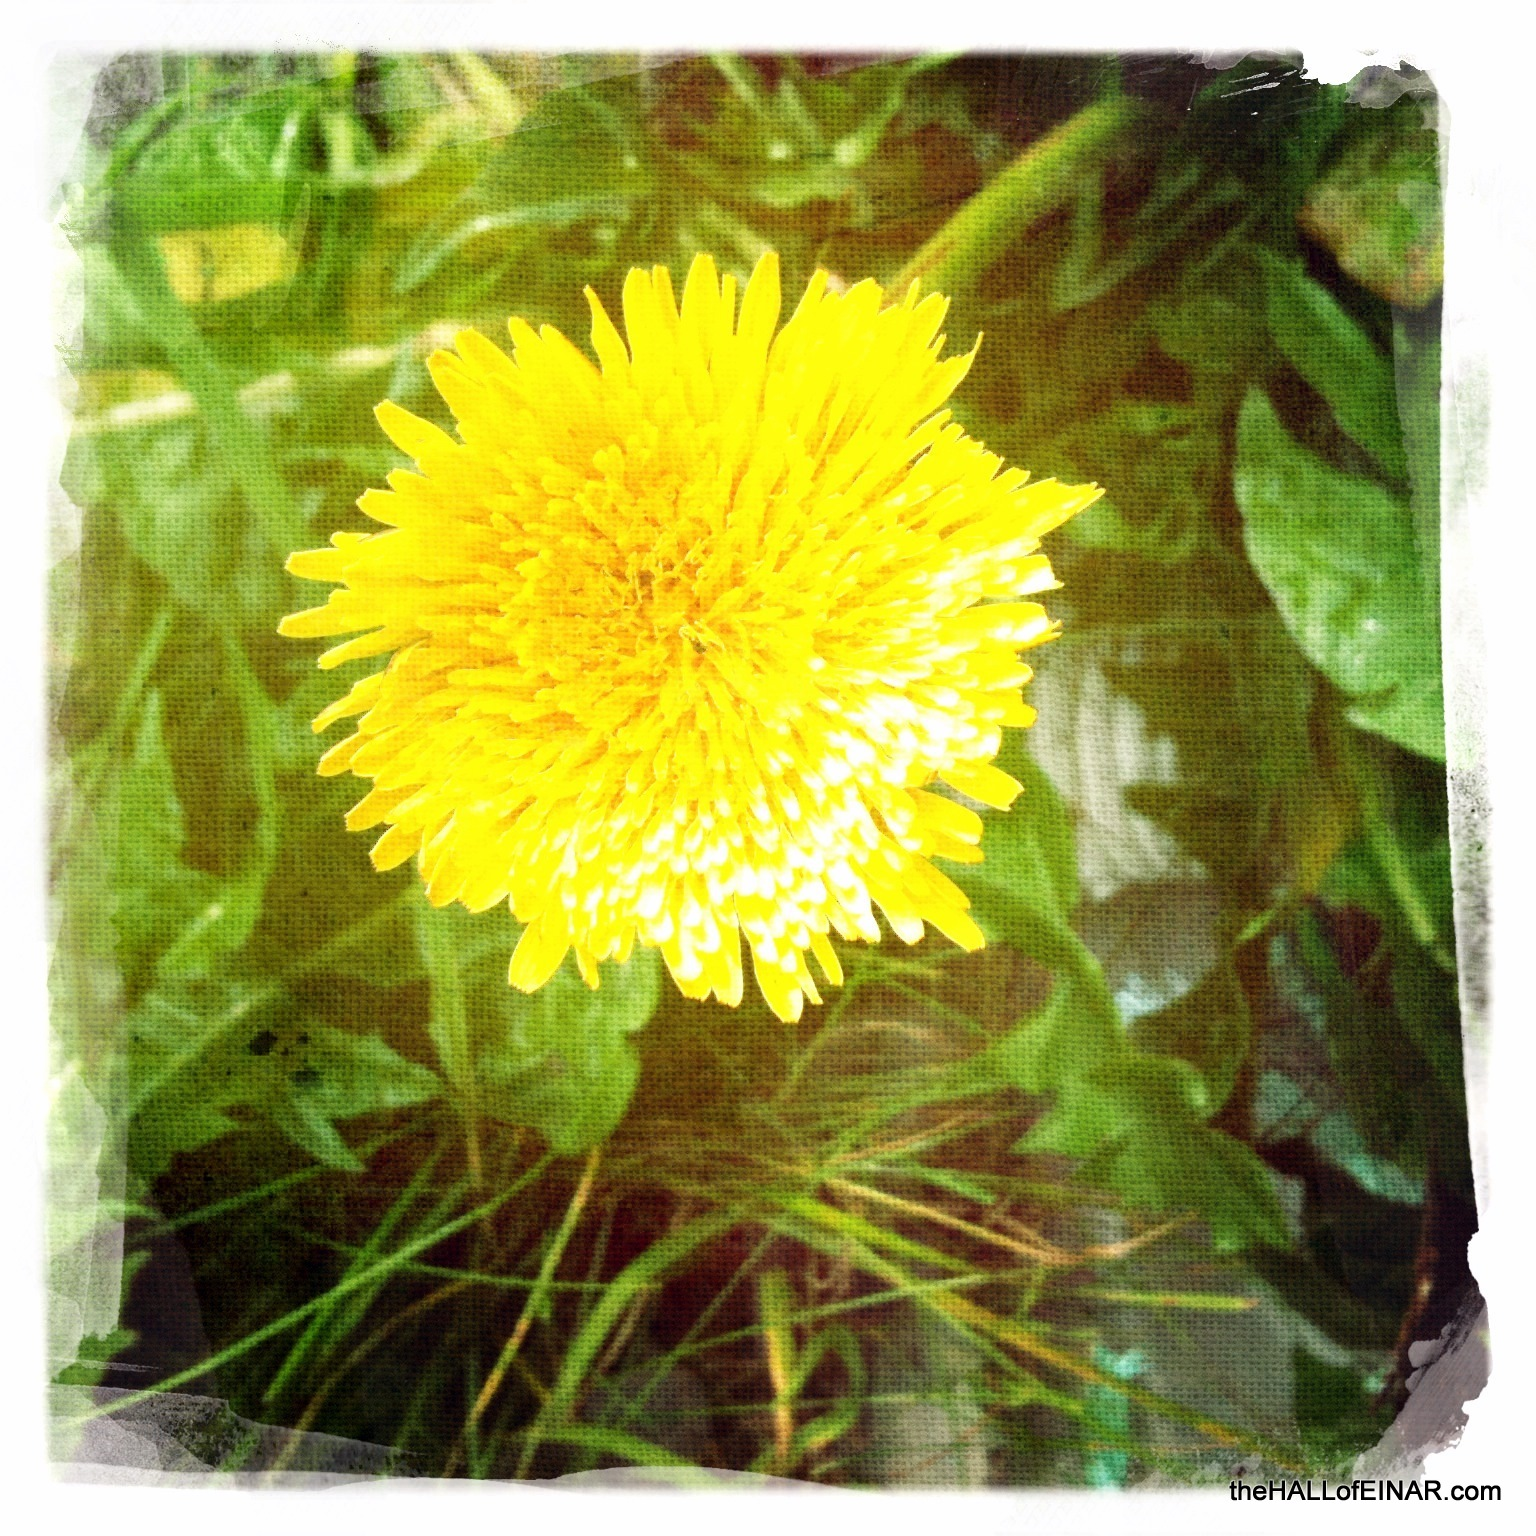 Dandelion - photograph (c) 2016 David Bailey (not the) - The Hall of Einar